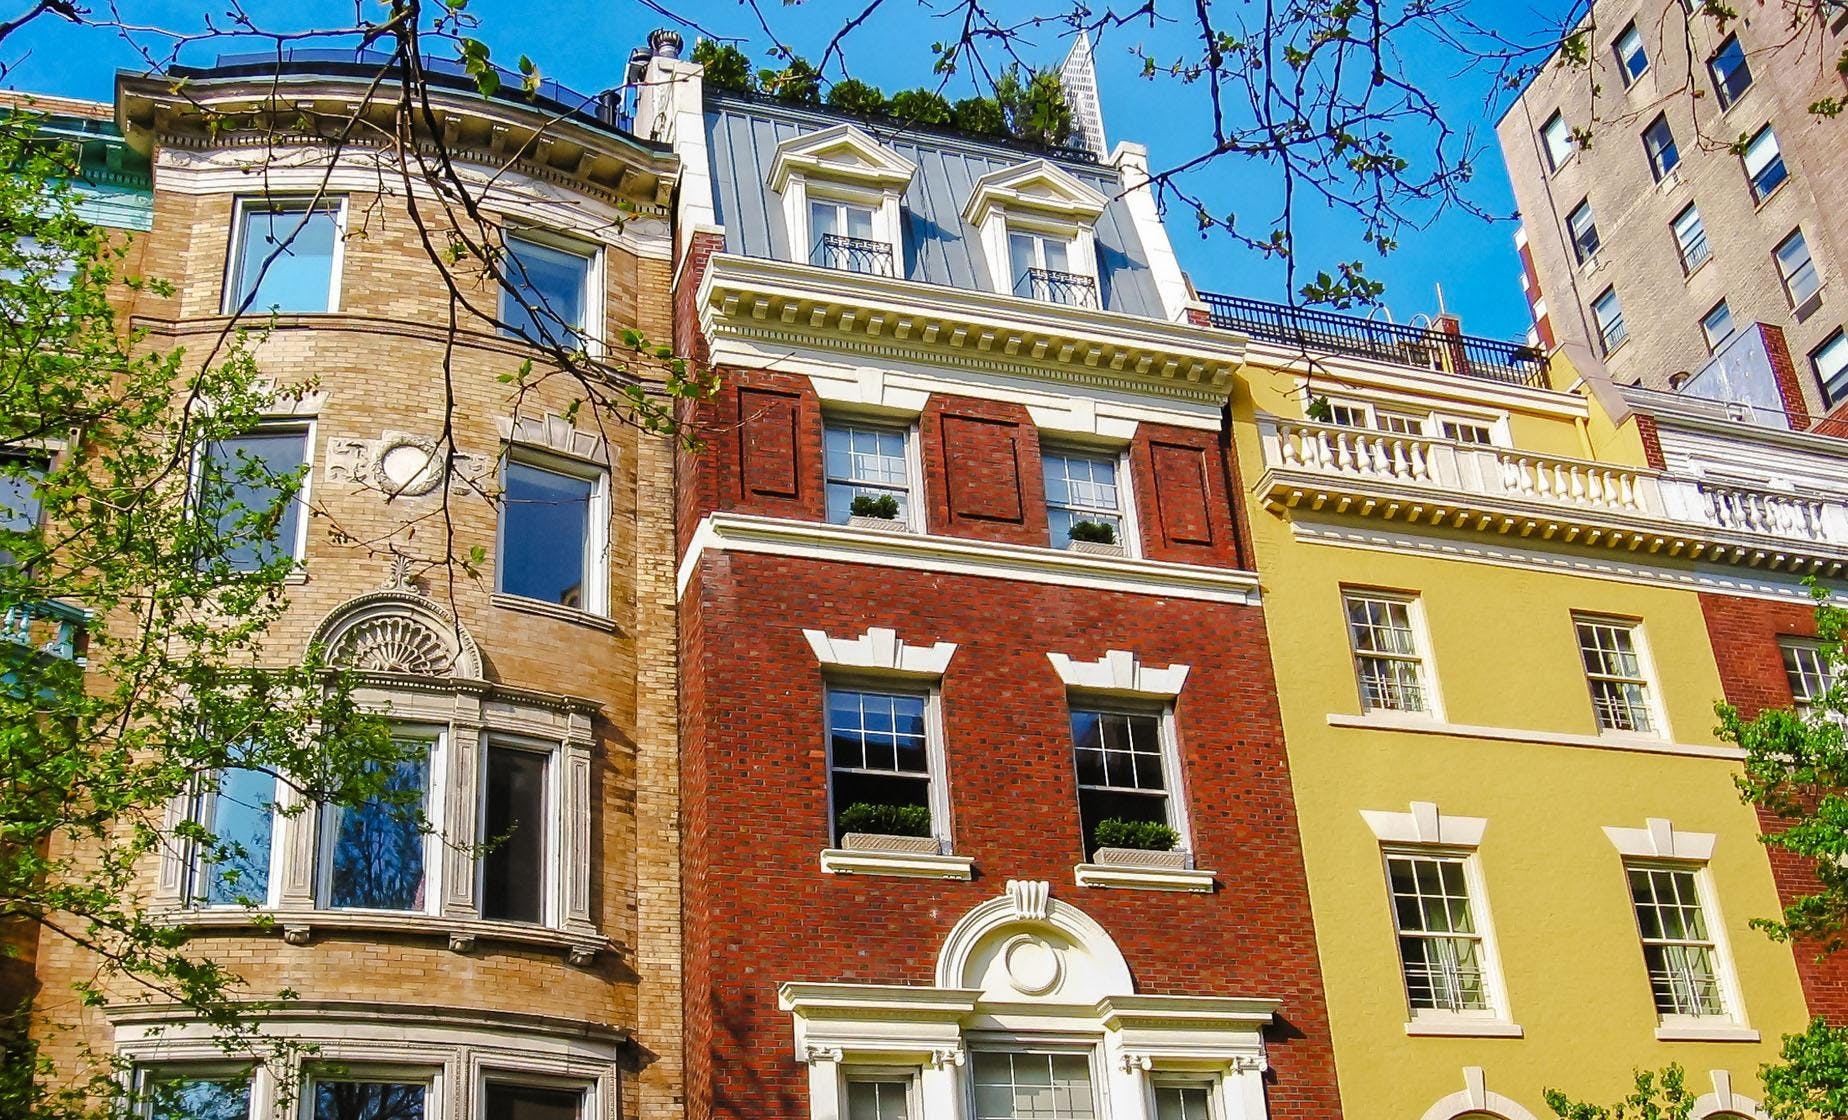 Tenements, Tastings, and Tales of New York's Lower East Side